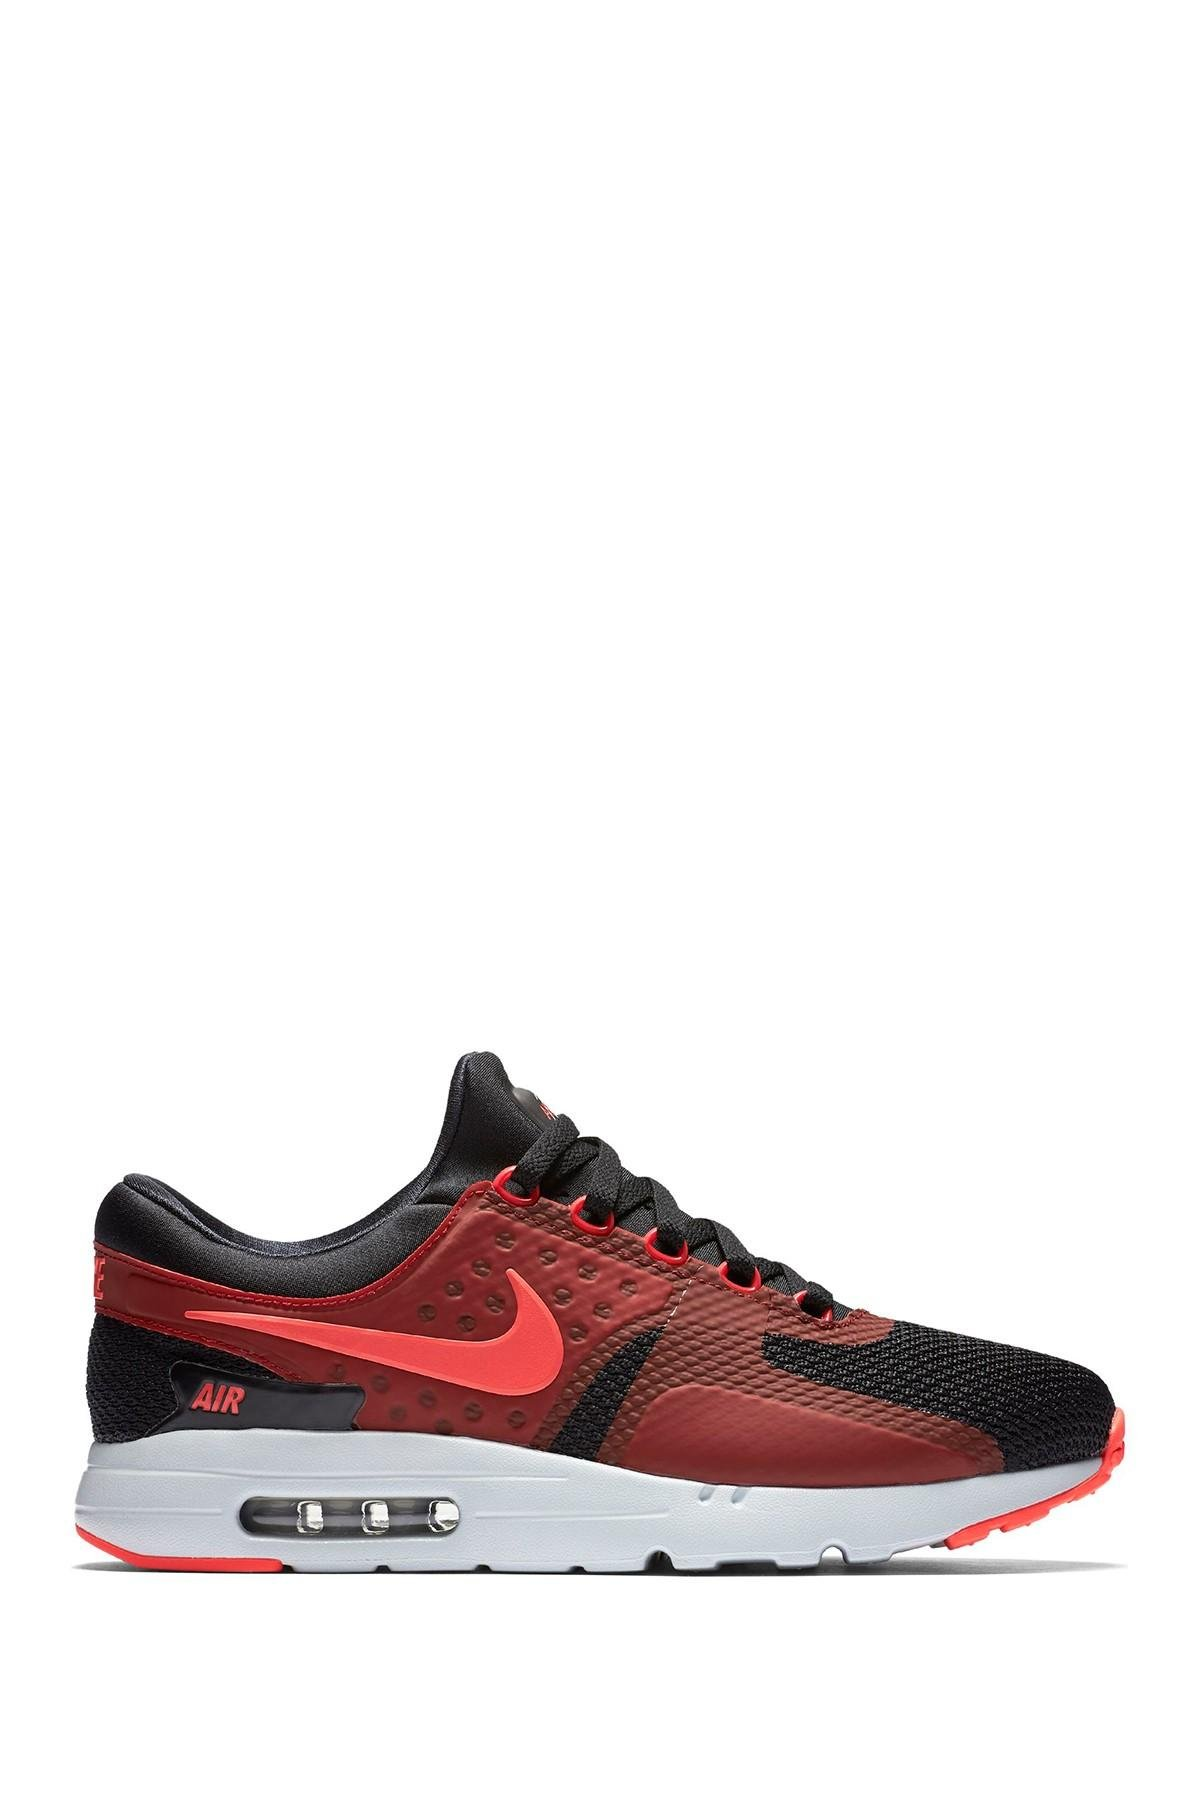 Nike Synthetic Air Max Zero Essential Sneaker for Men - Save 36 ...